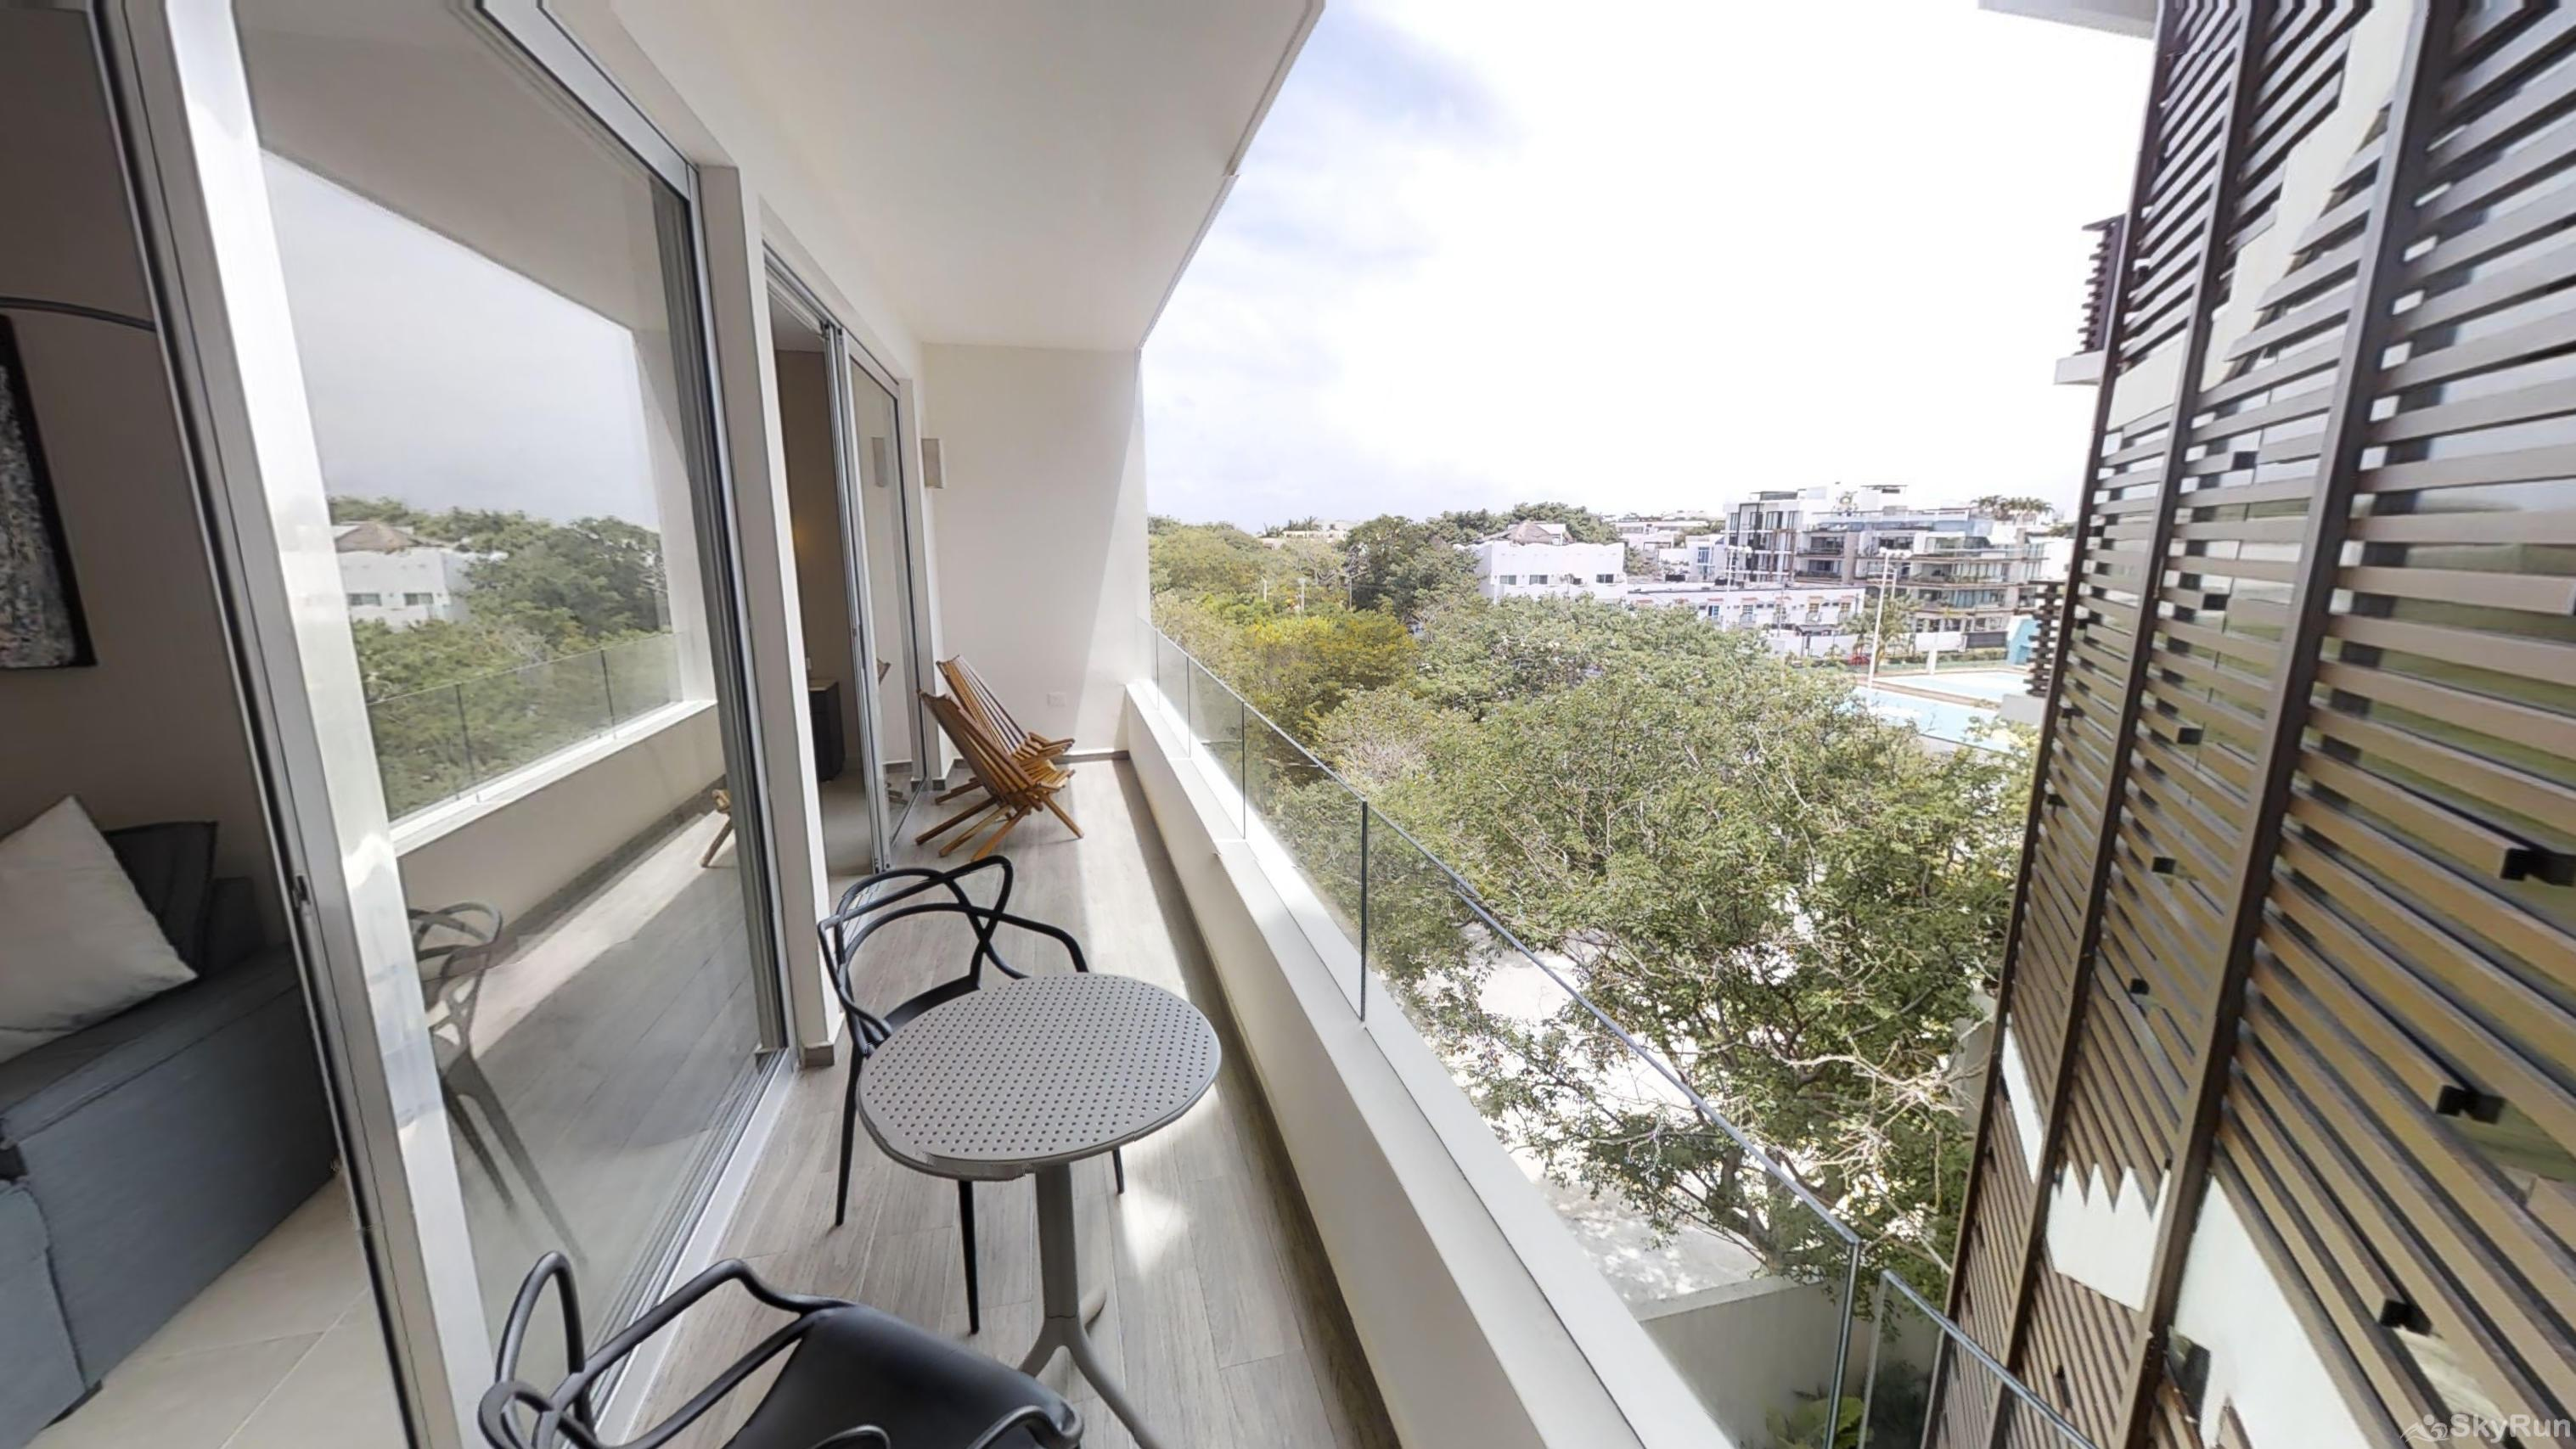 LUXURY RESIDENCE w Panoramic view 1BR 5star hotel amenities Panoramic View in this incredible Apartment